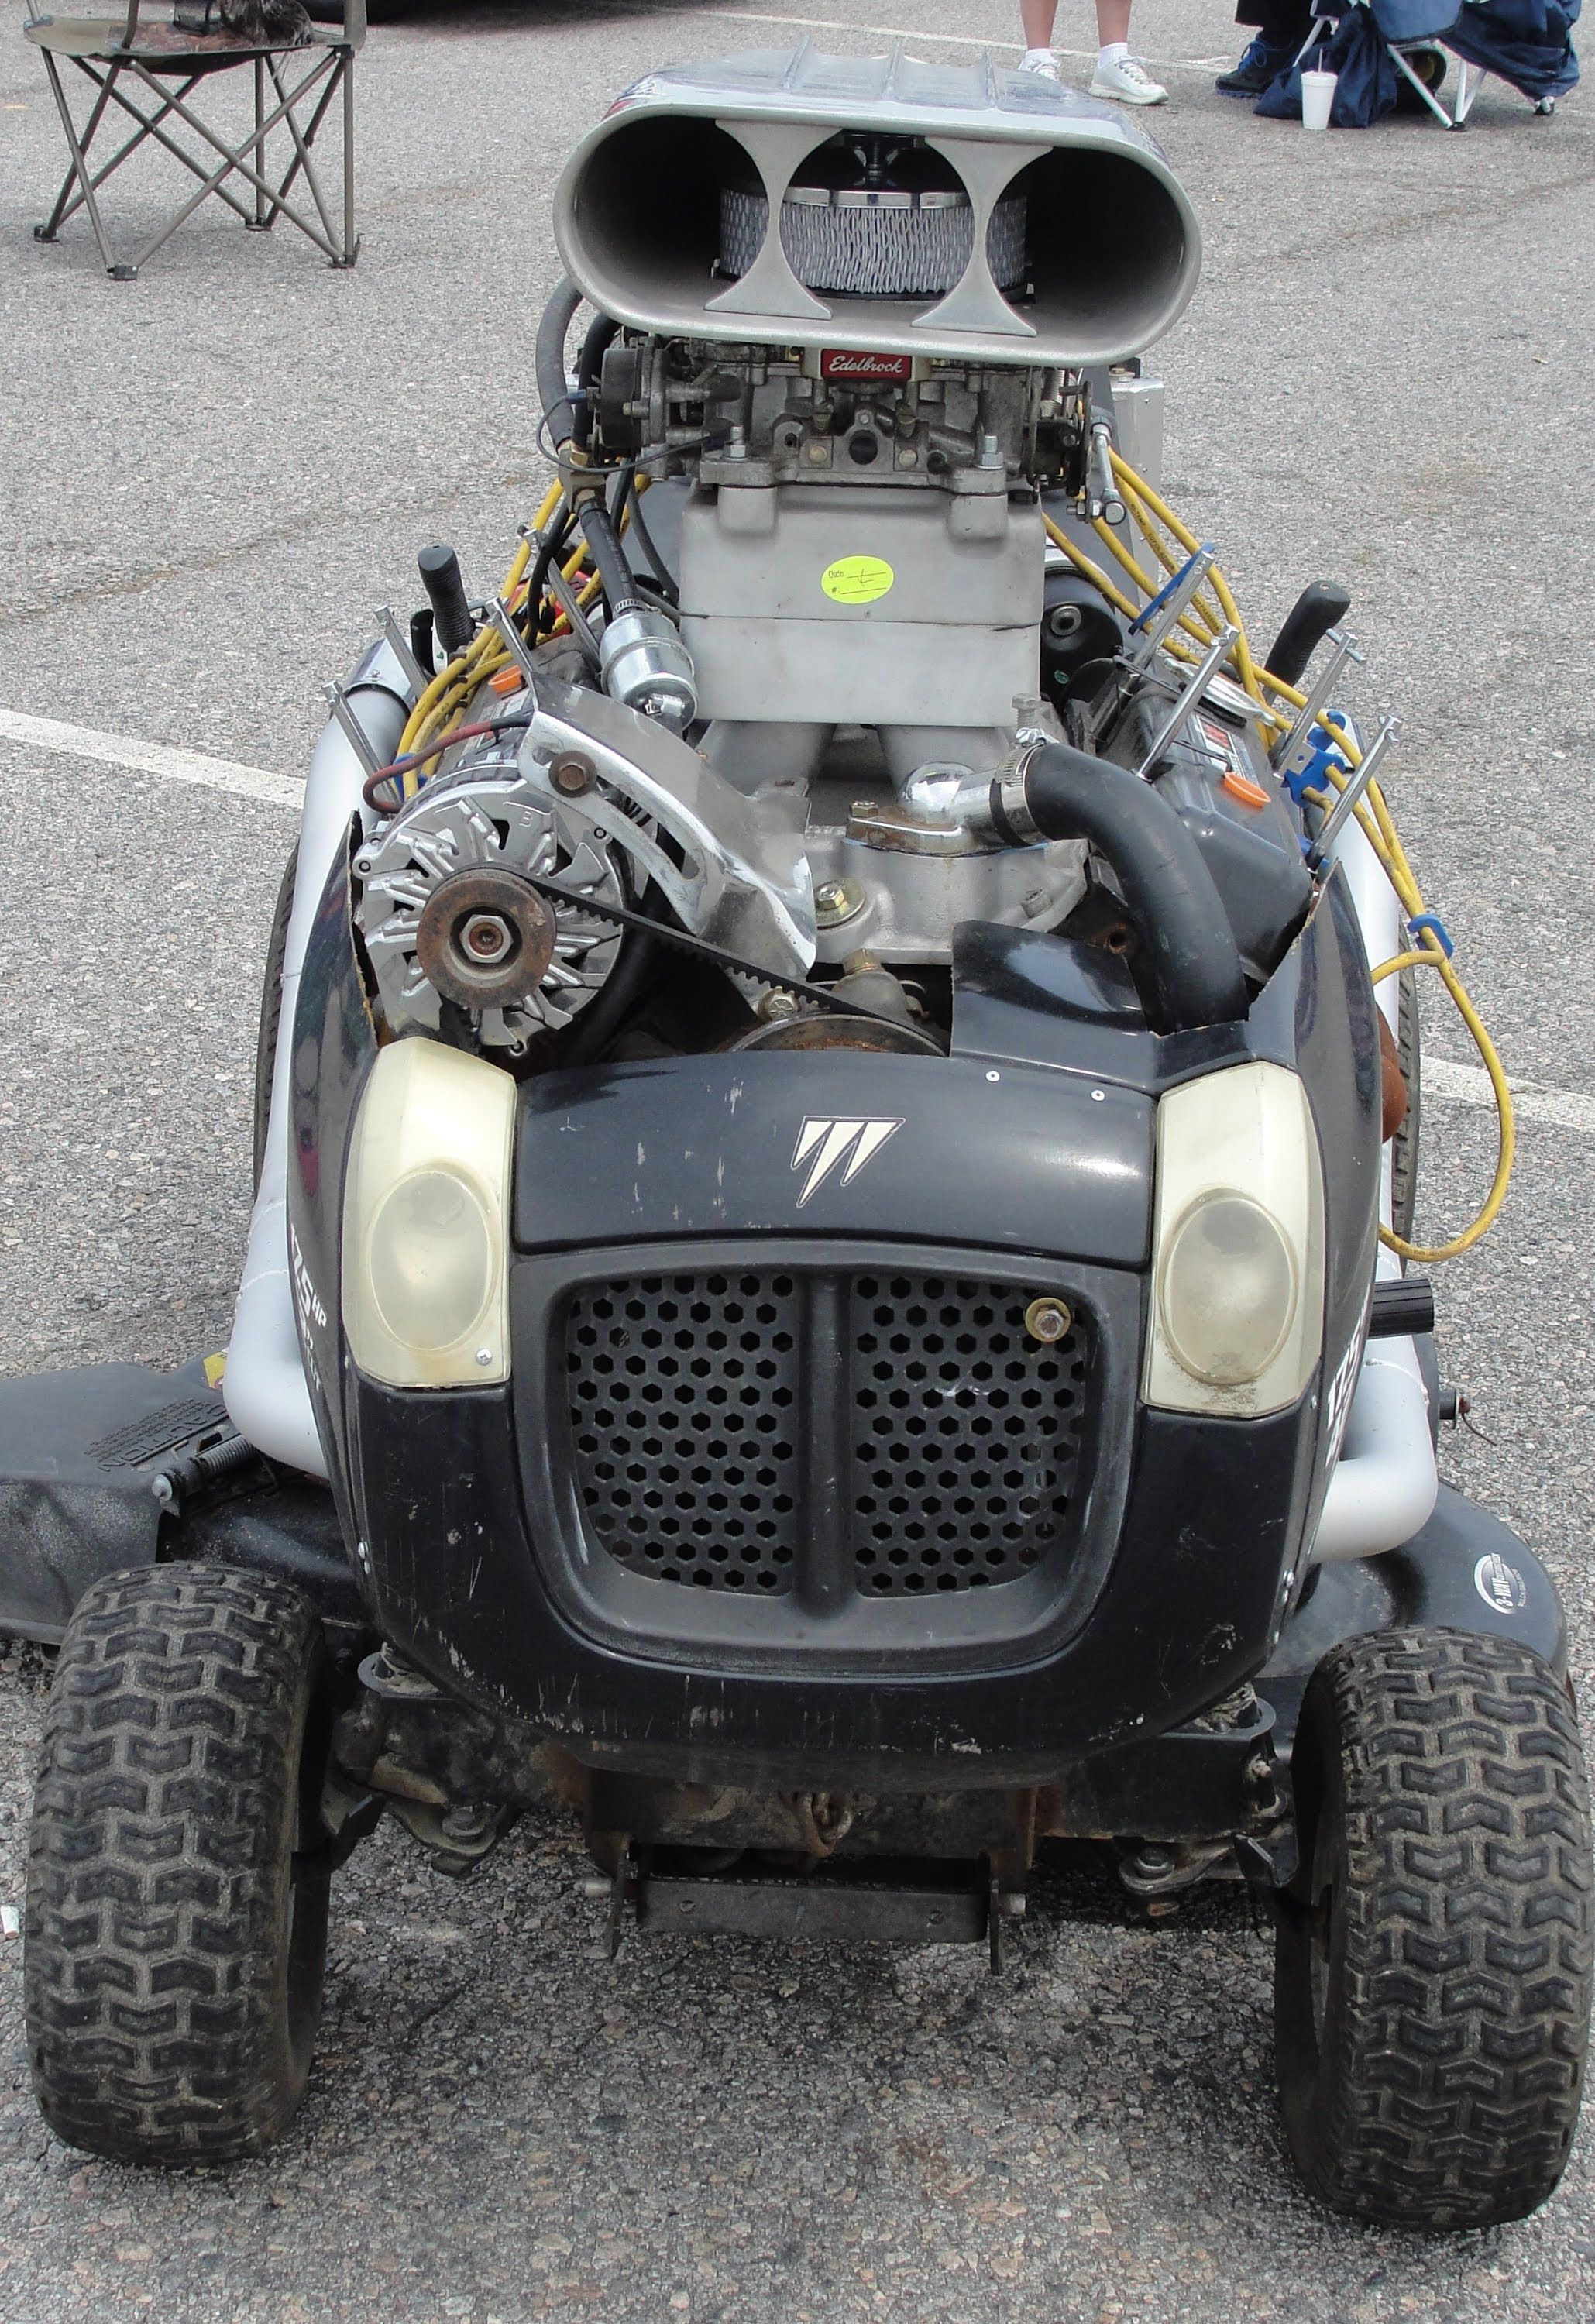 Why Not Throw A 350 V8 On A Lawn Mower Lawn Mower Lawn Mower Tractor Lawn Mower Racing